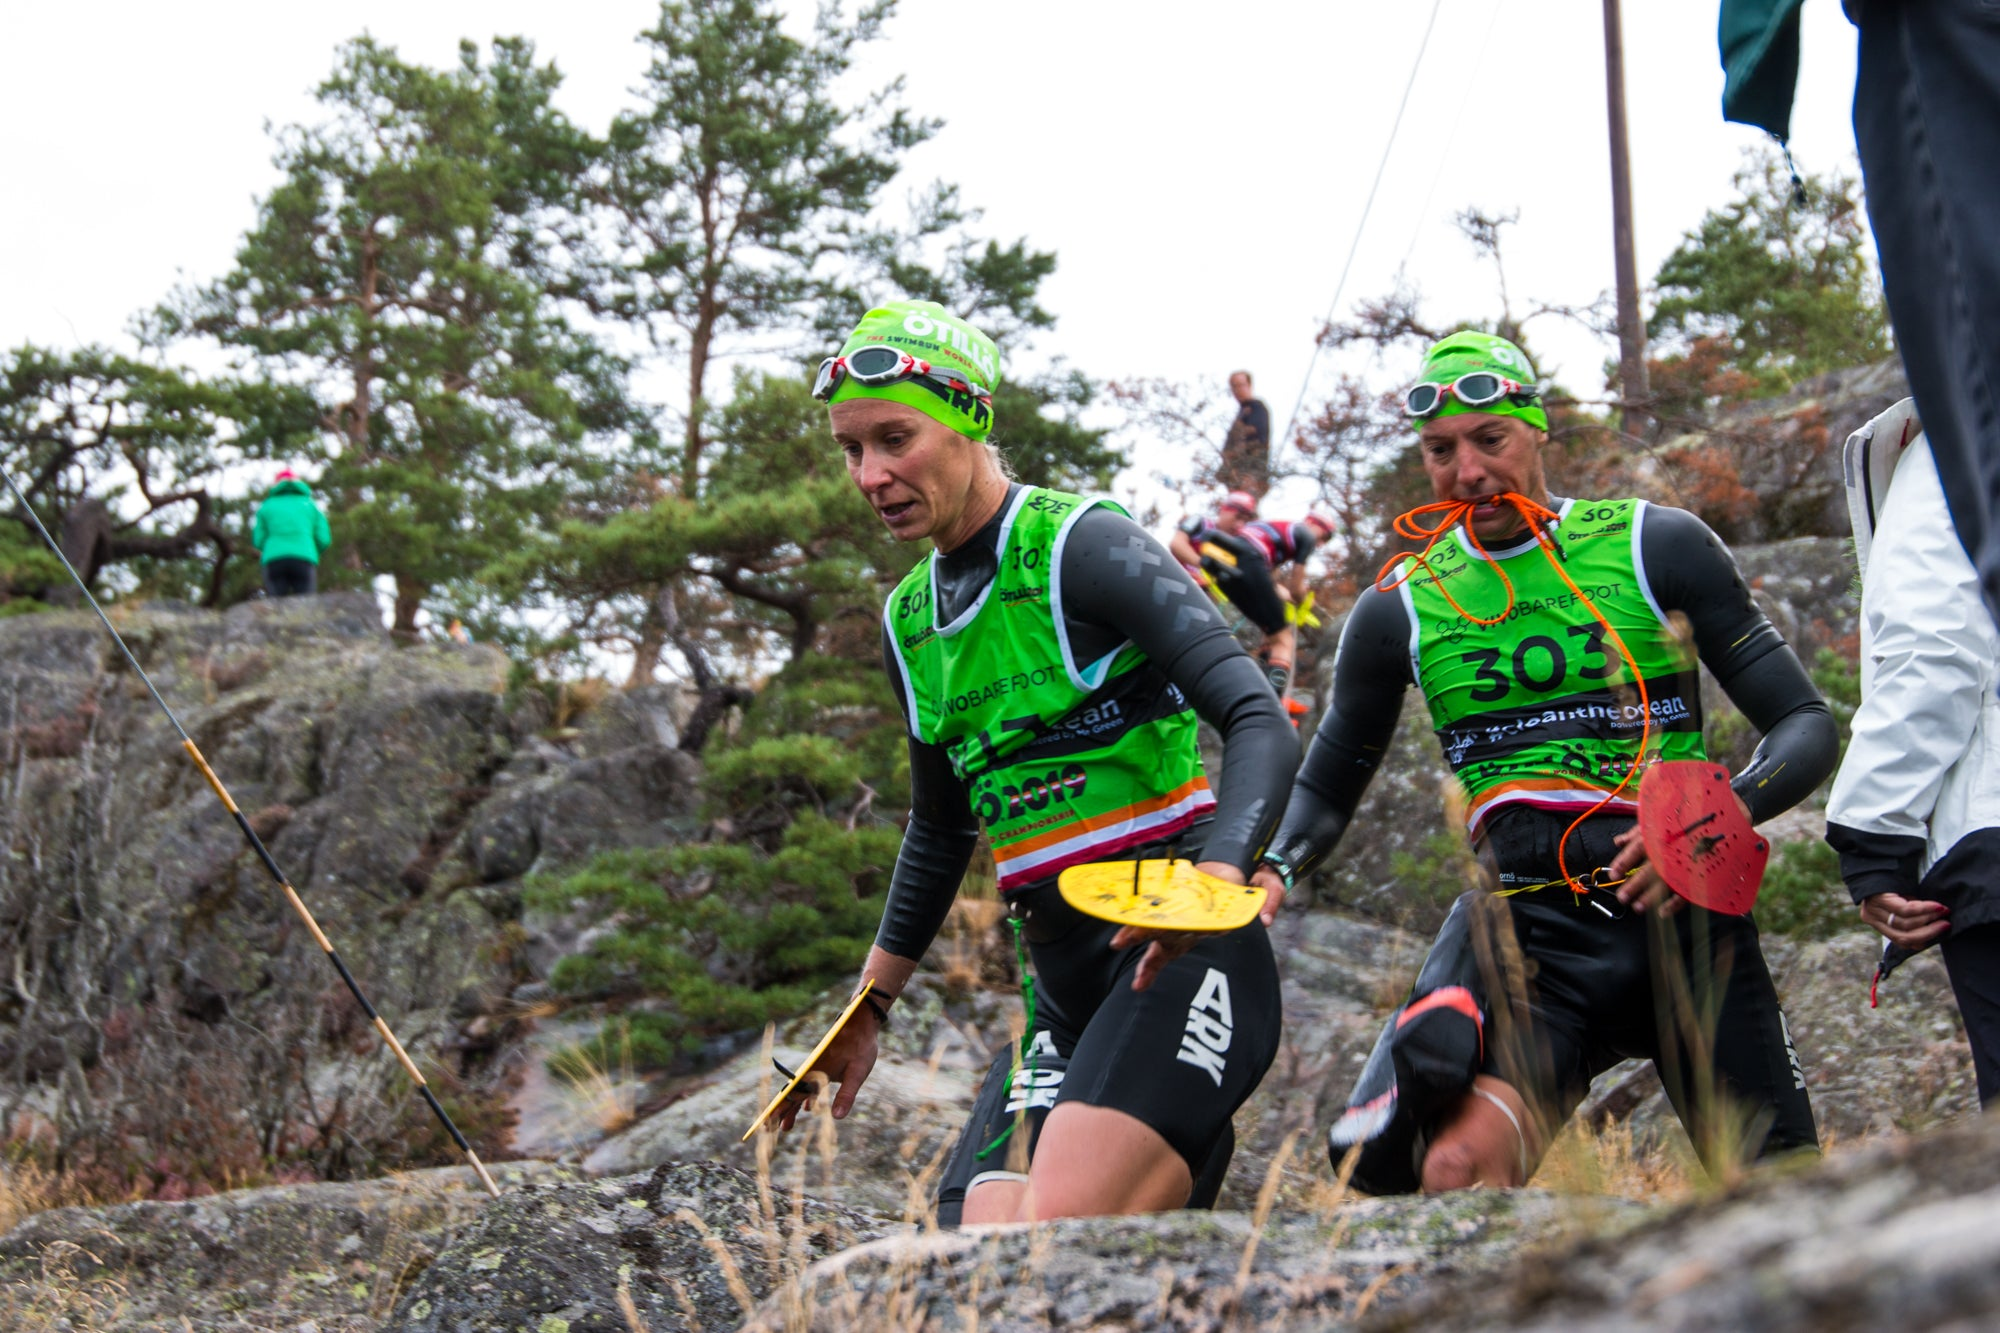 Racers competing at the 2019 ÖTILLÖ Swimrun World Championship